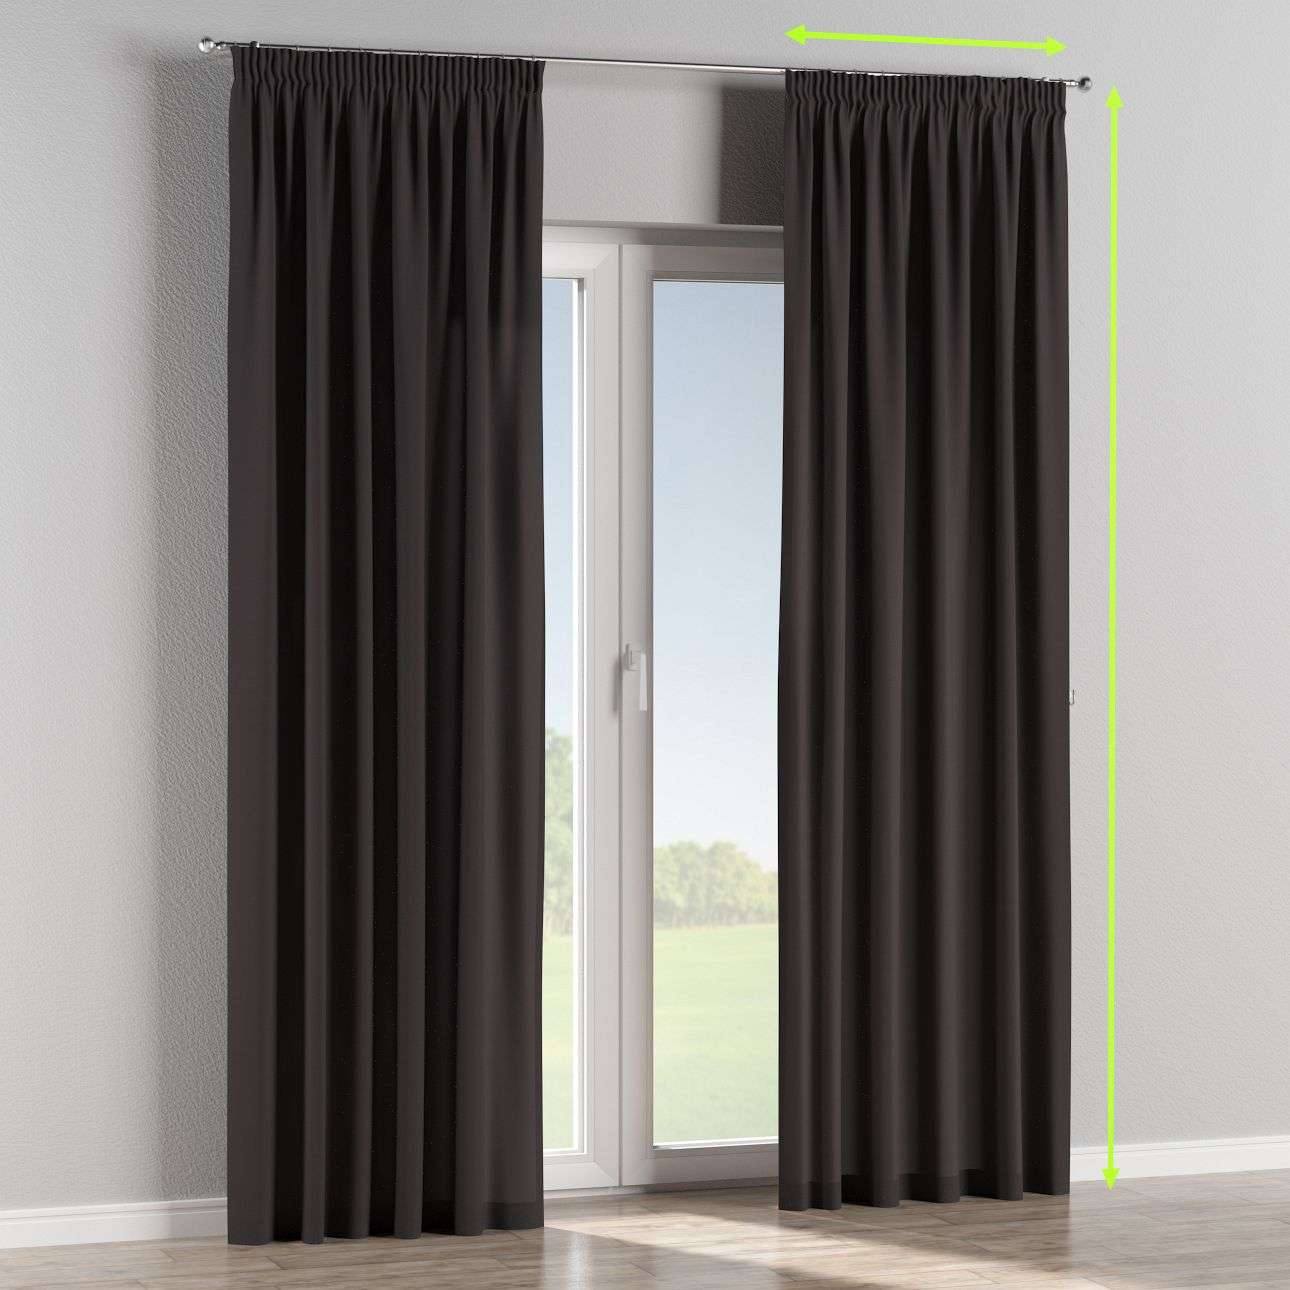 Pencil pleat curtains in collection Cotton Panama, fabric: 702-09